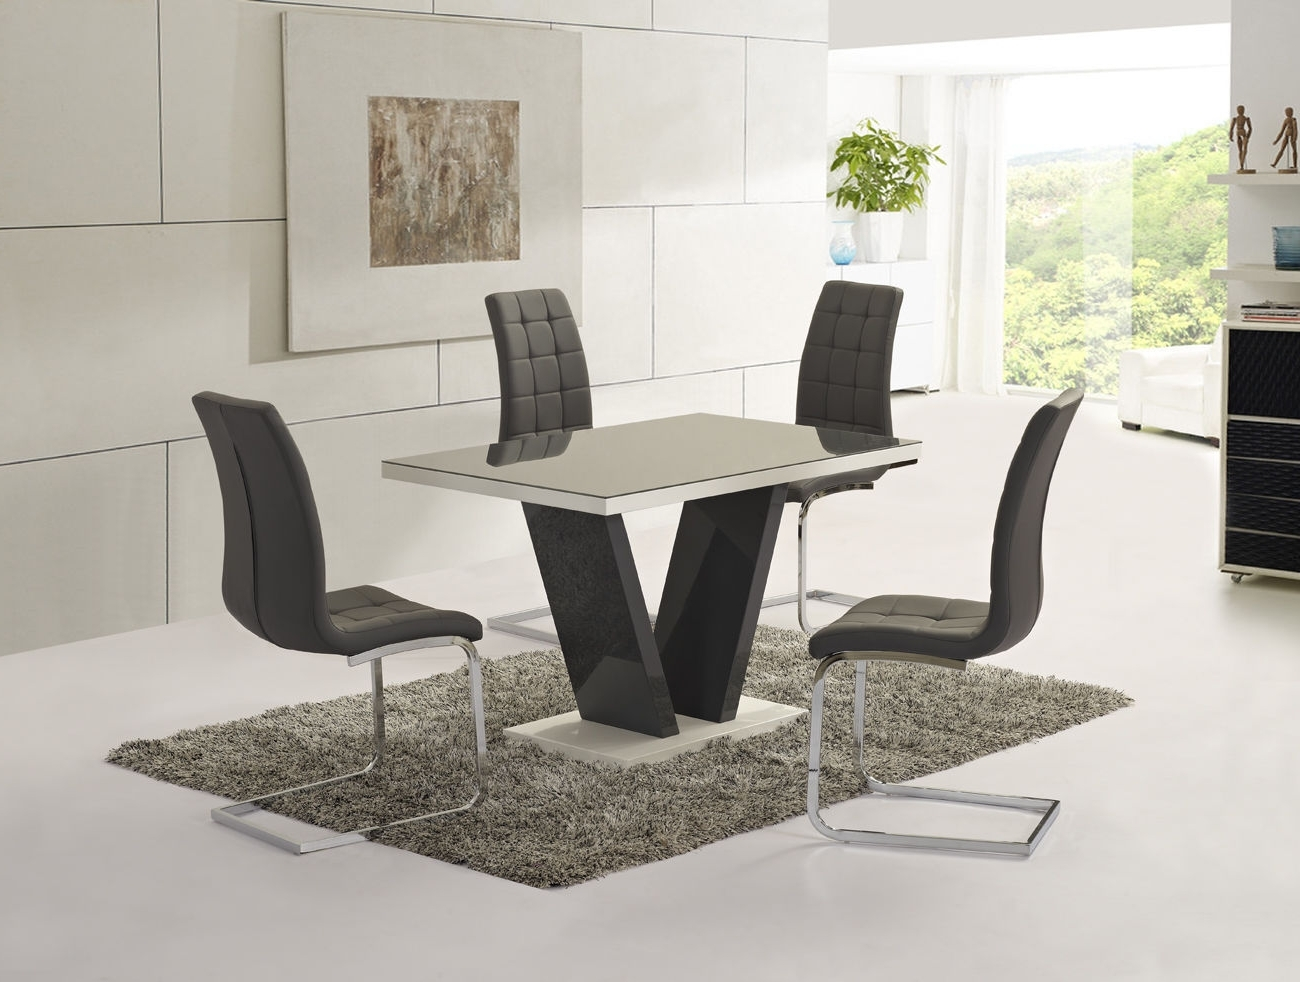 Ga Vico Gloss Grey Glass Top Designer 160Cm Dining Set – 4 6 Grey In Most Popular High Gloss White Dining Tables And Chairs (Gallery 14 of 25)